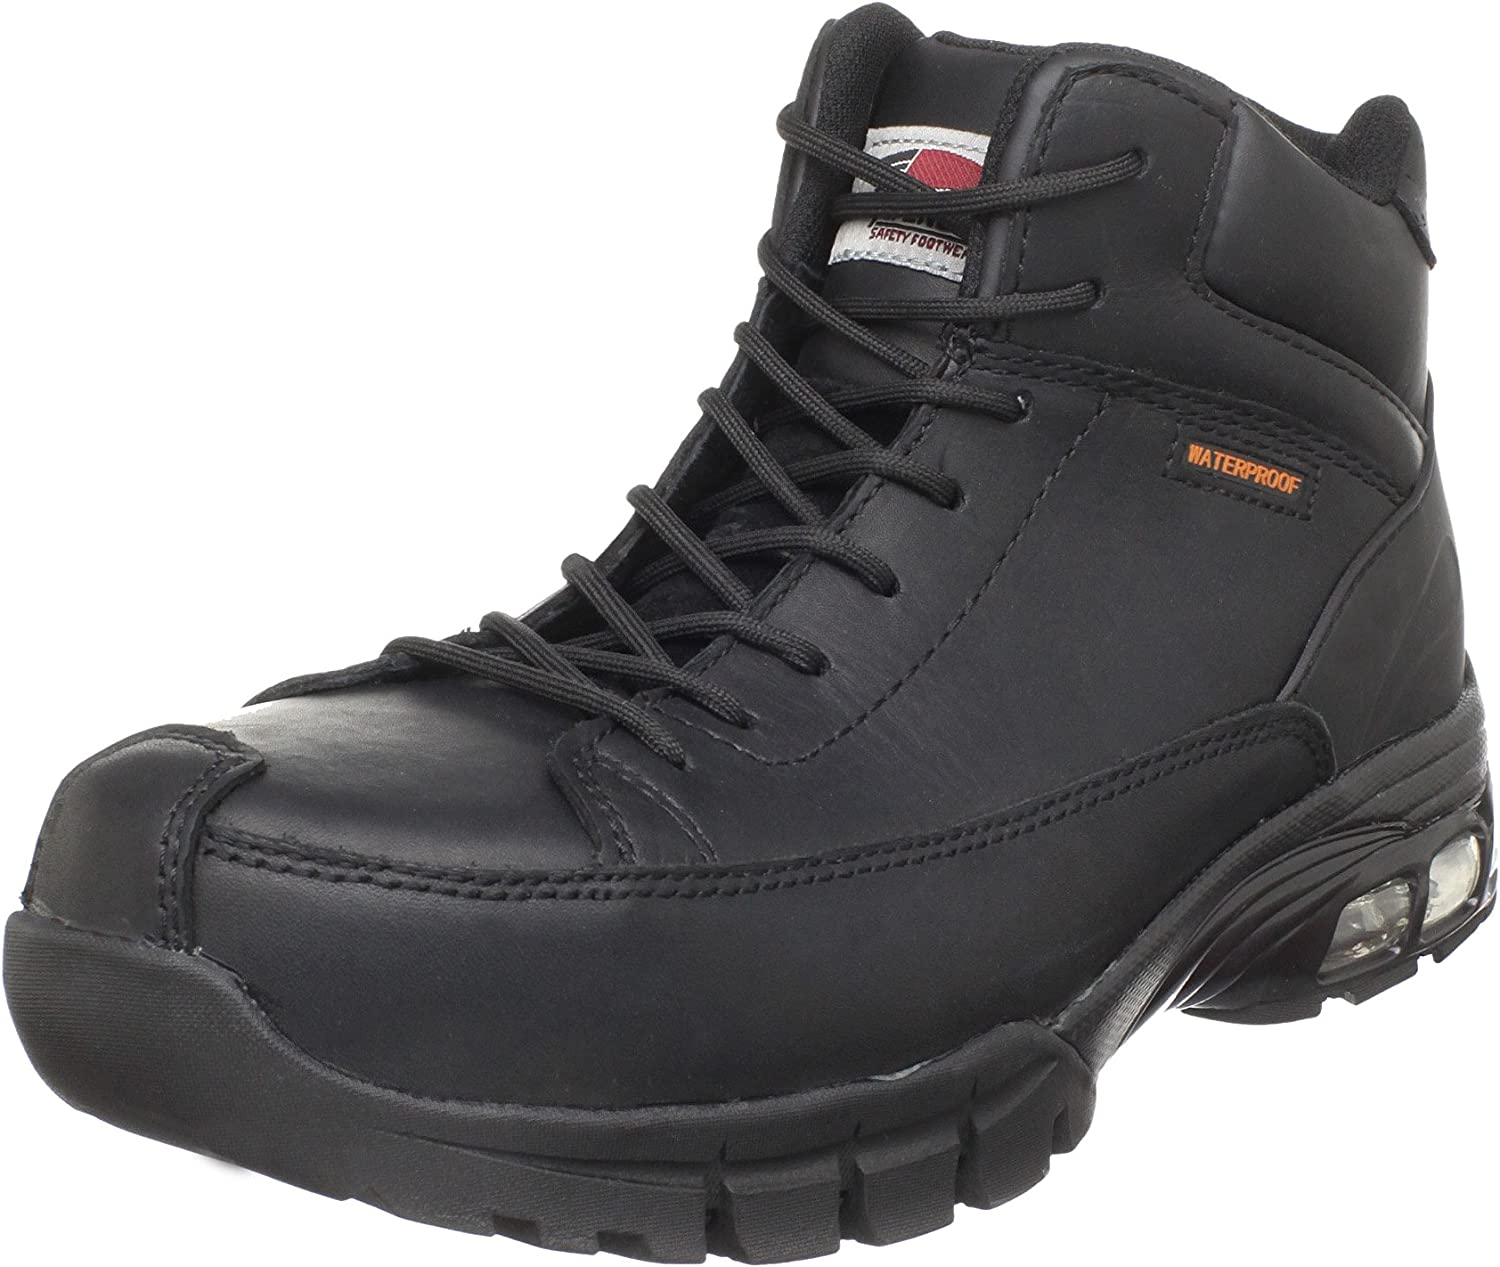 Avenger Work Boots Specialty Mesa Mall A7248 Toe Seattle Mall Men's Carbon EH Waterproo